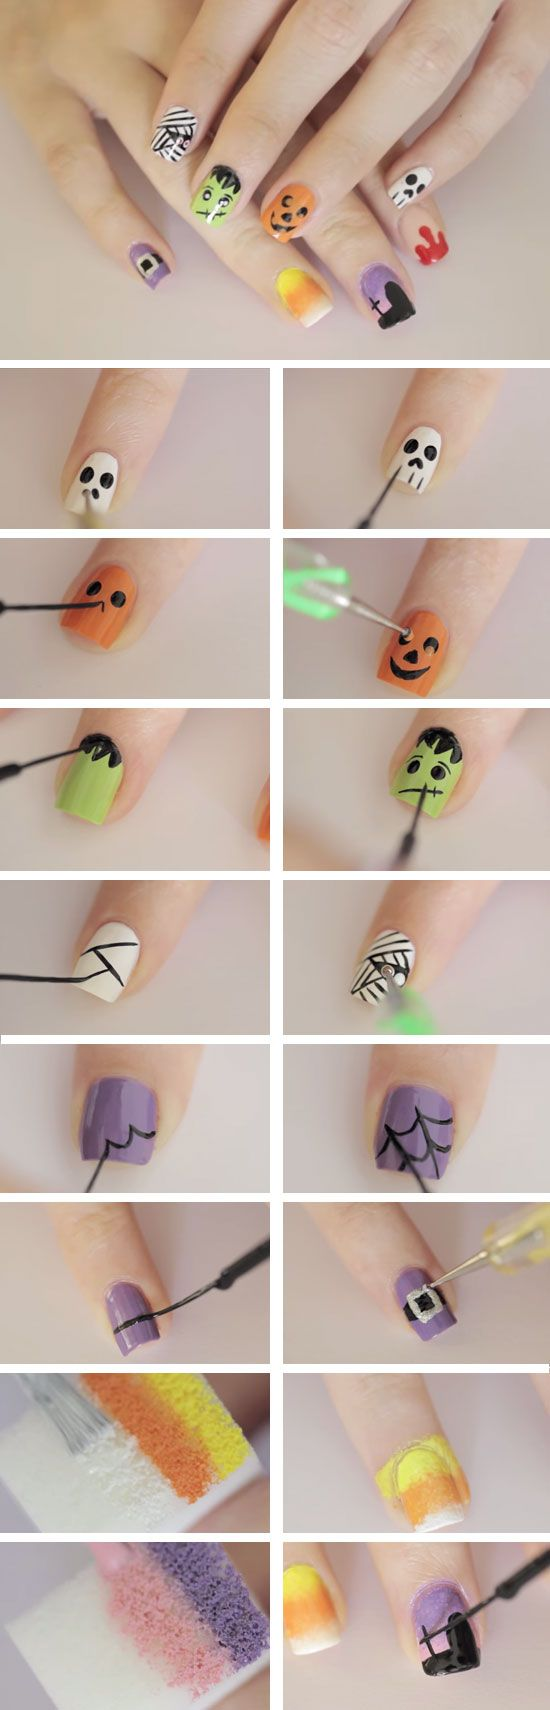 Diy Halloween Nail Art Designs You Can Try Yourself Halloween Nails Diy Halloween Nail Designs Nail Art Diy